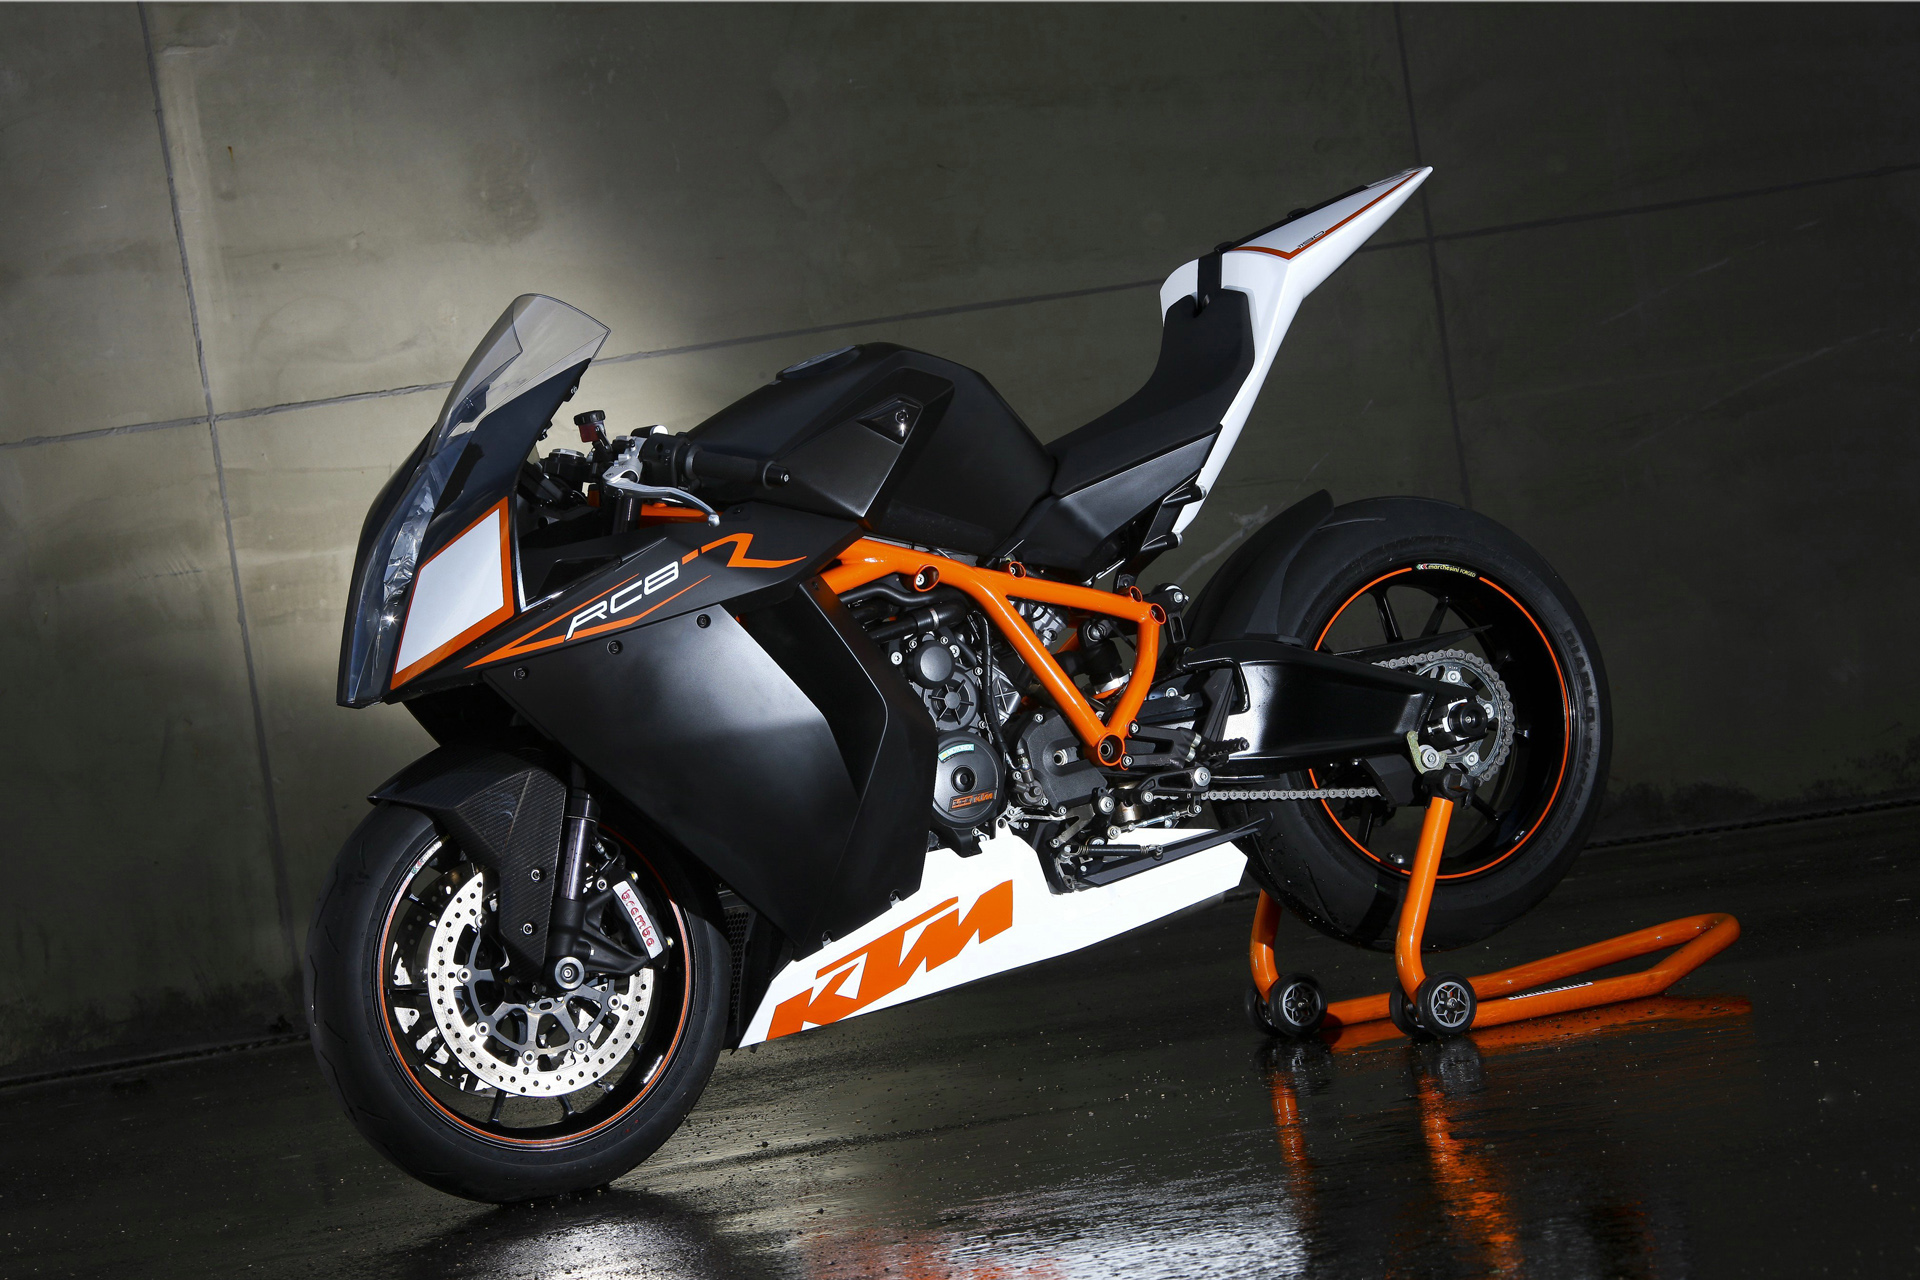 1920x1280 - KTM RC8 Wallpapers 7